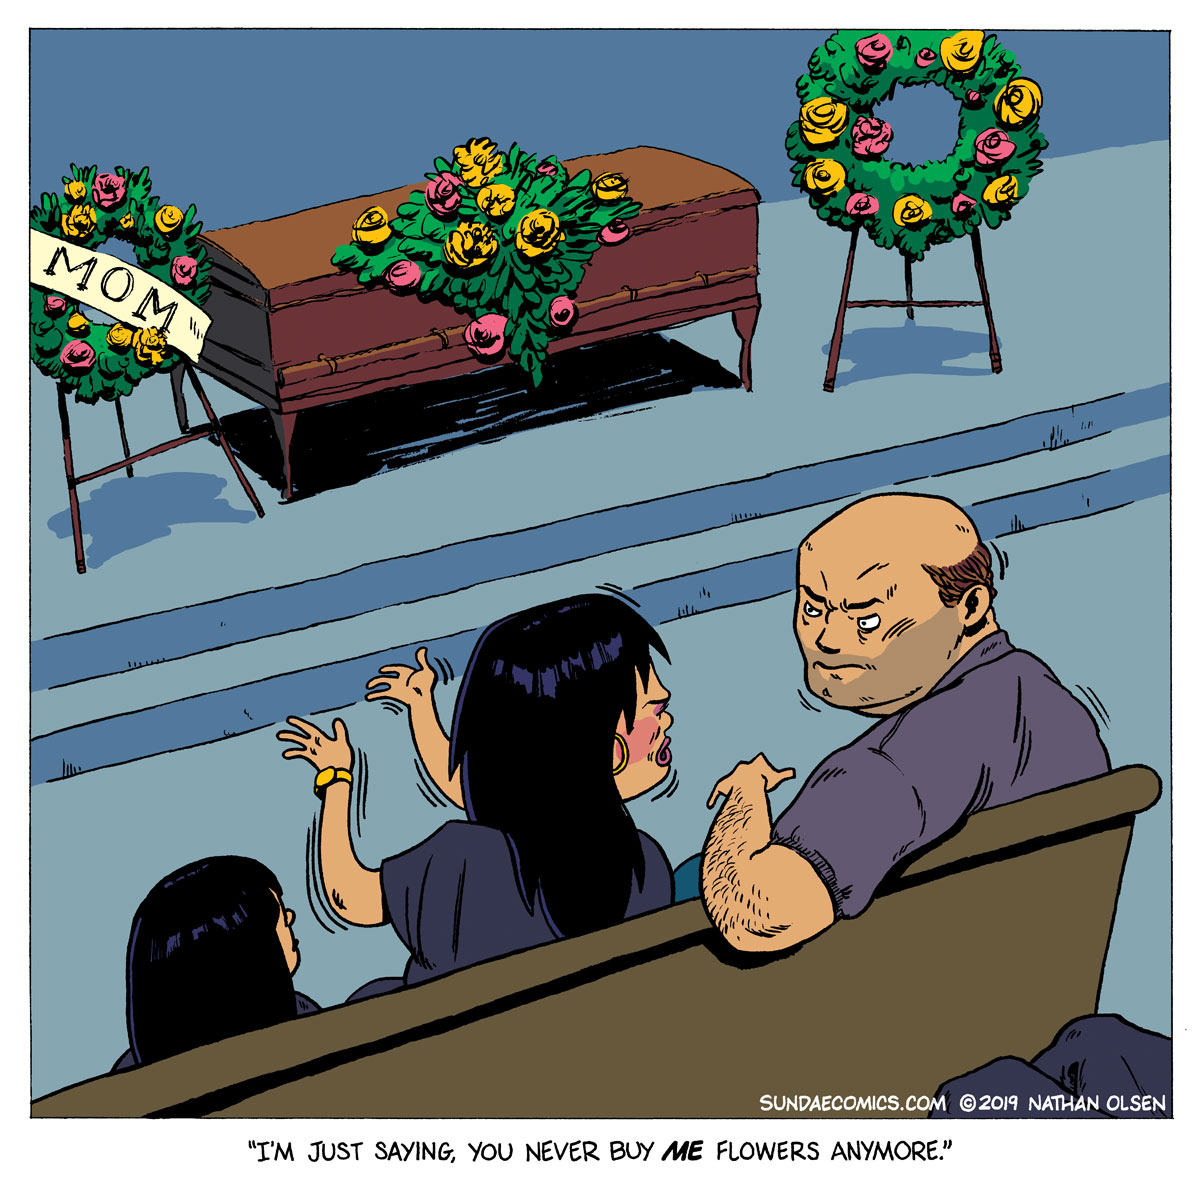 A webcomic about the dangers of forgetting to buy your wife flowers for Mother's Day.